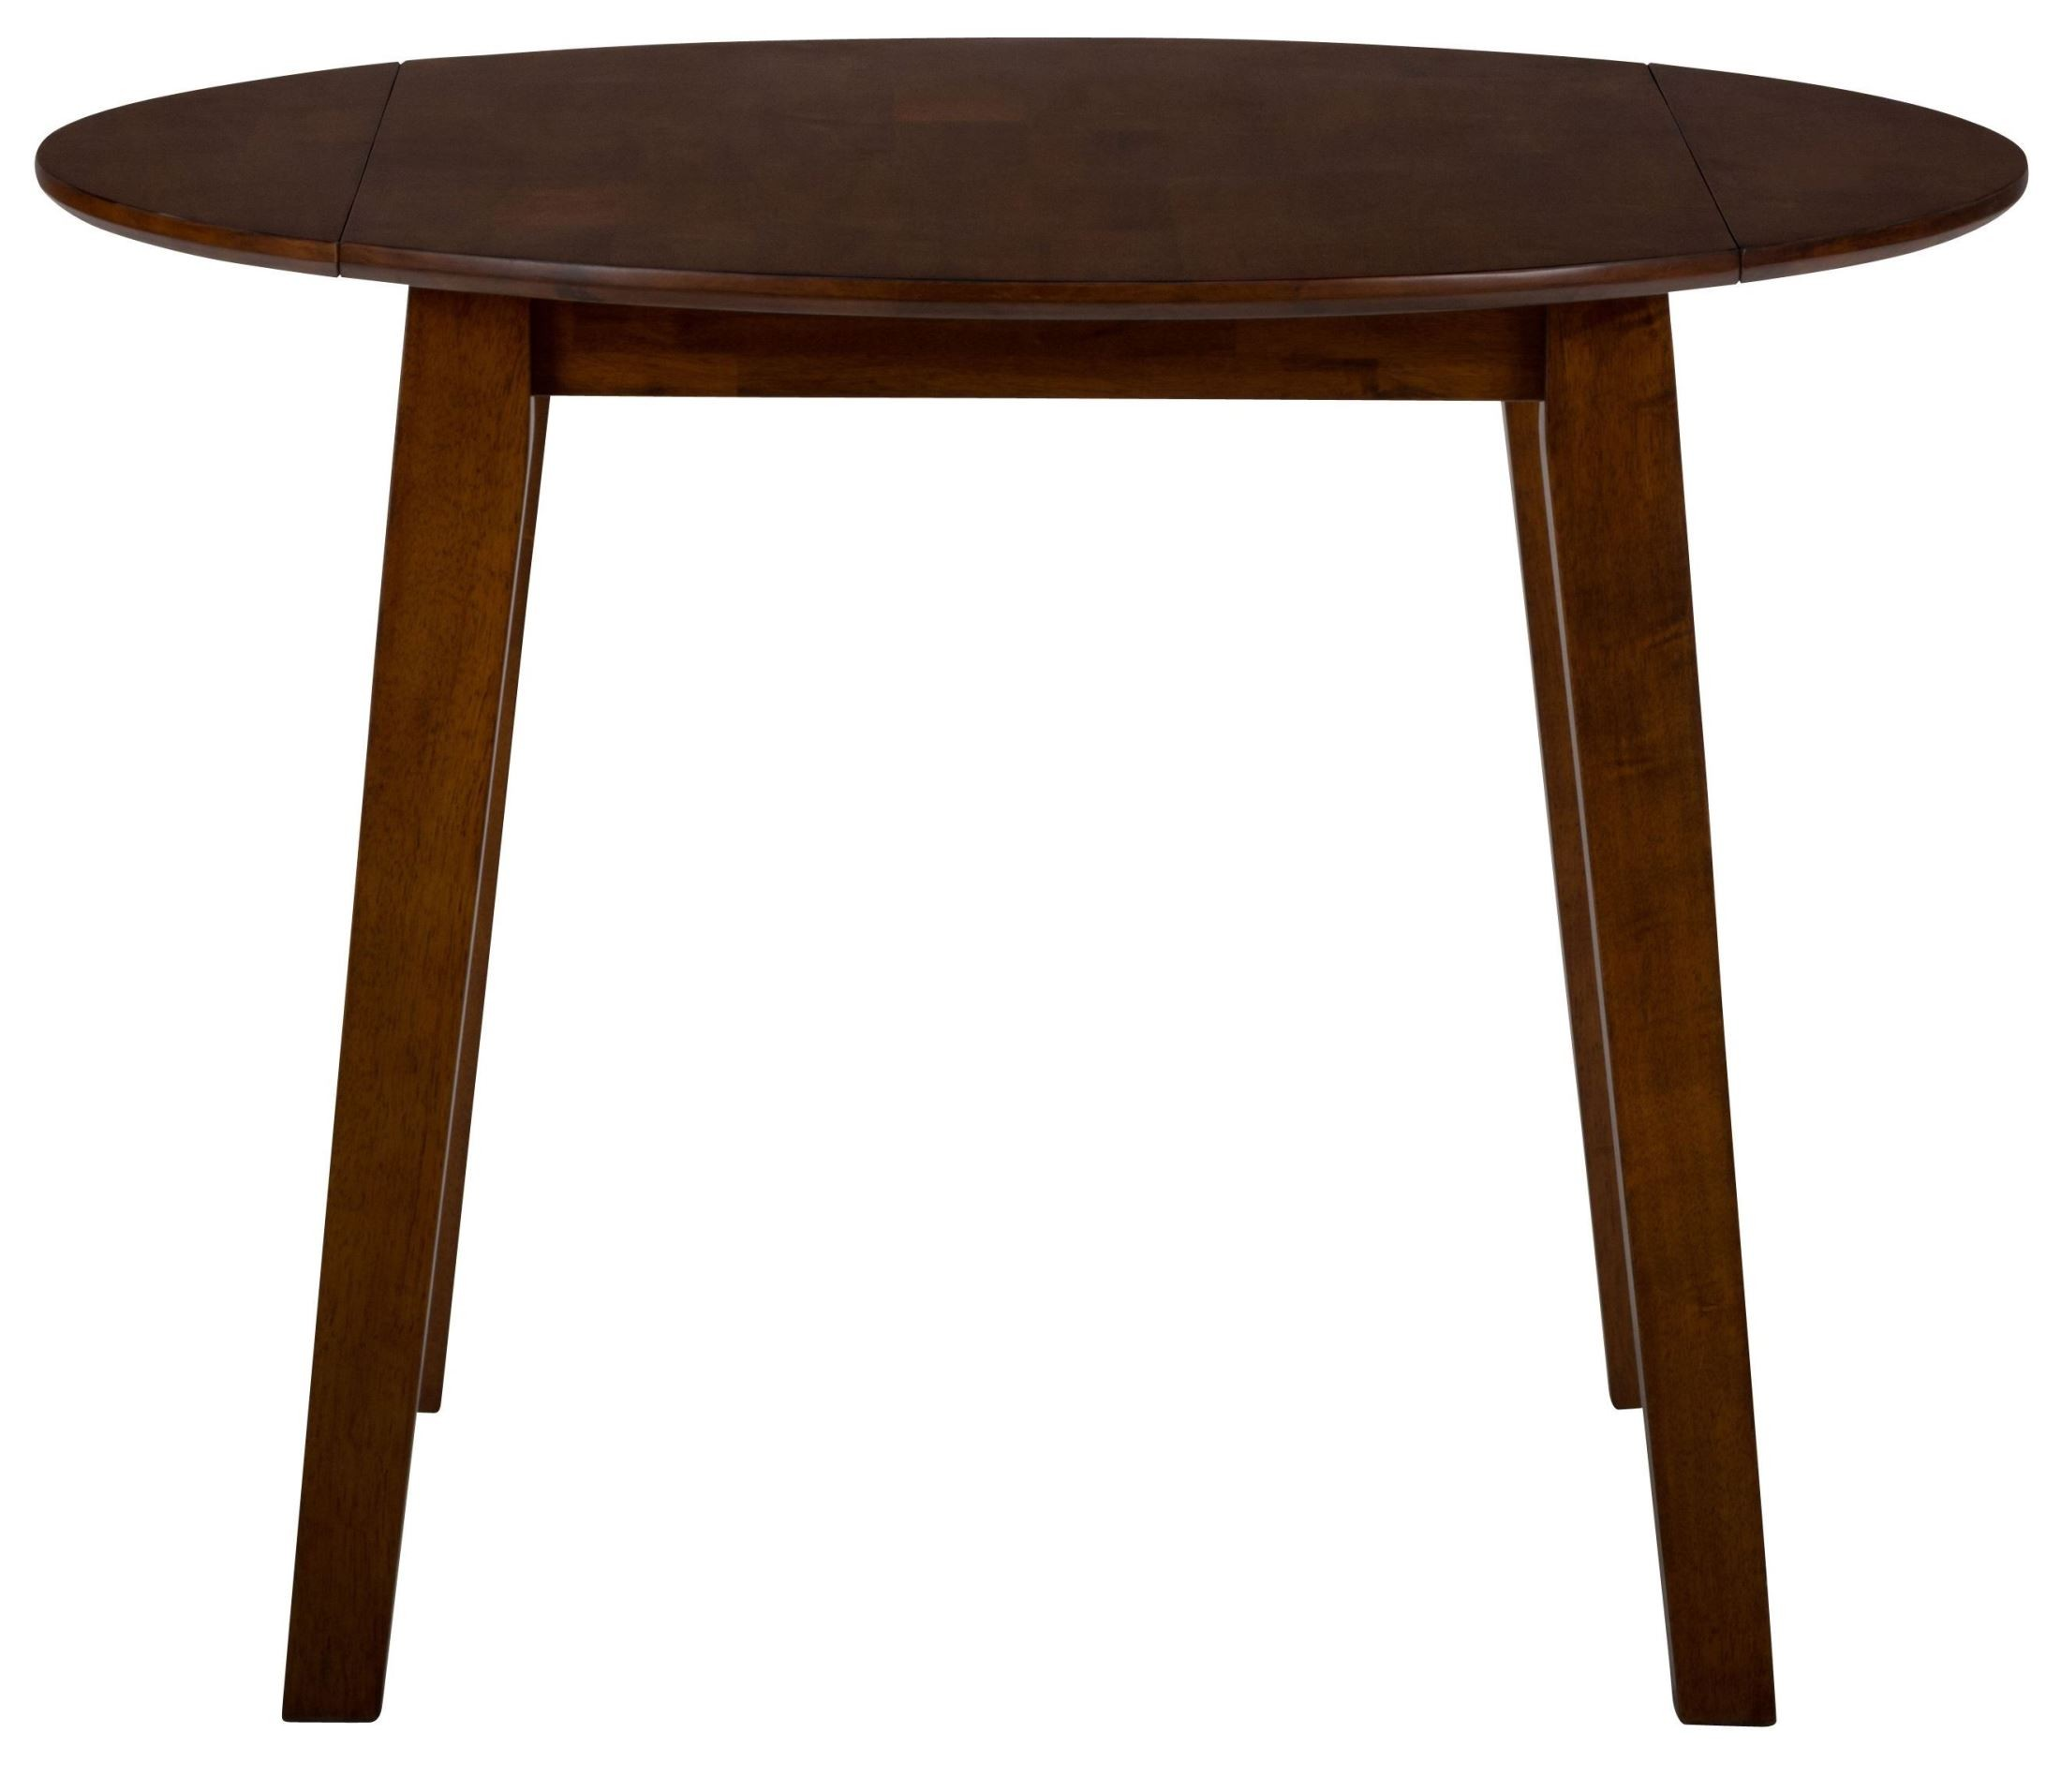 Simplicity caramel extendable round drop leaf dining table for Dining room table replacement leaf